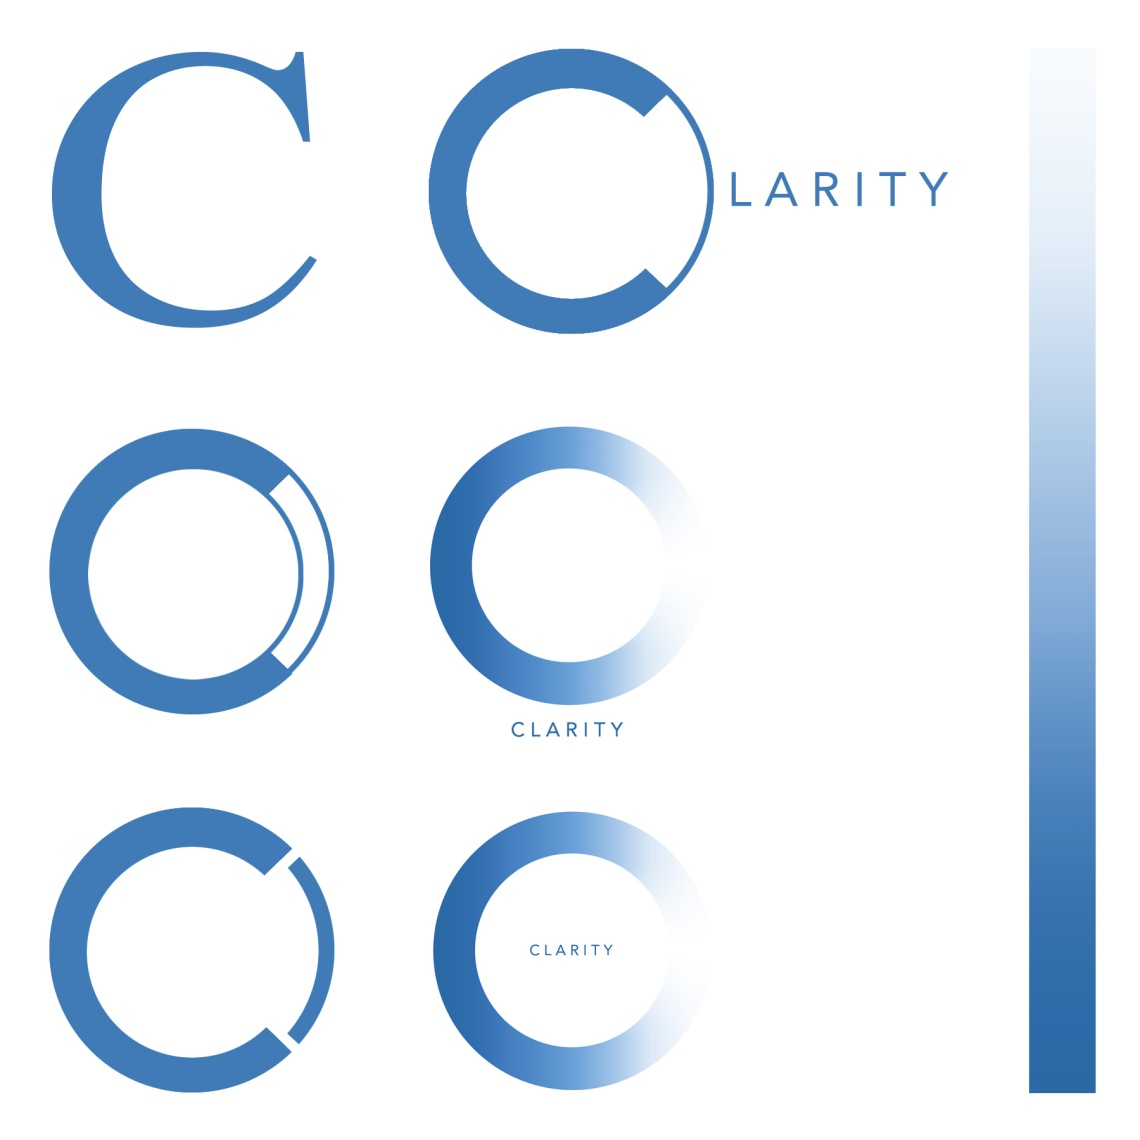 clarity-logo-iteration